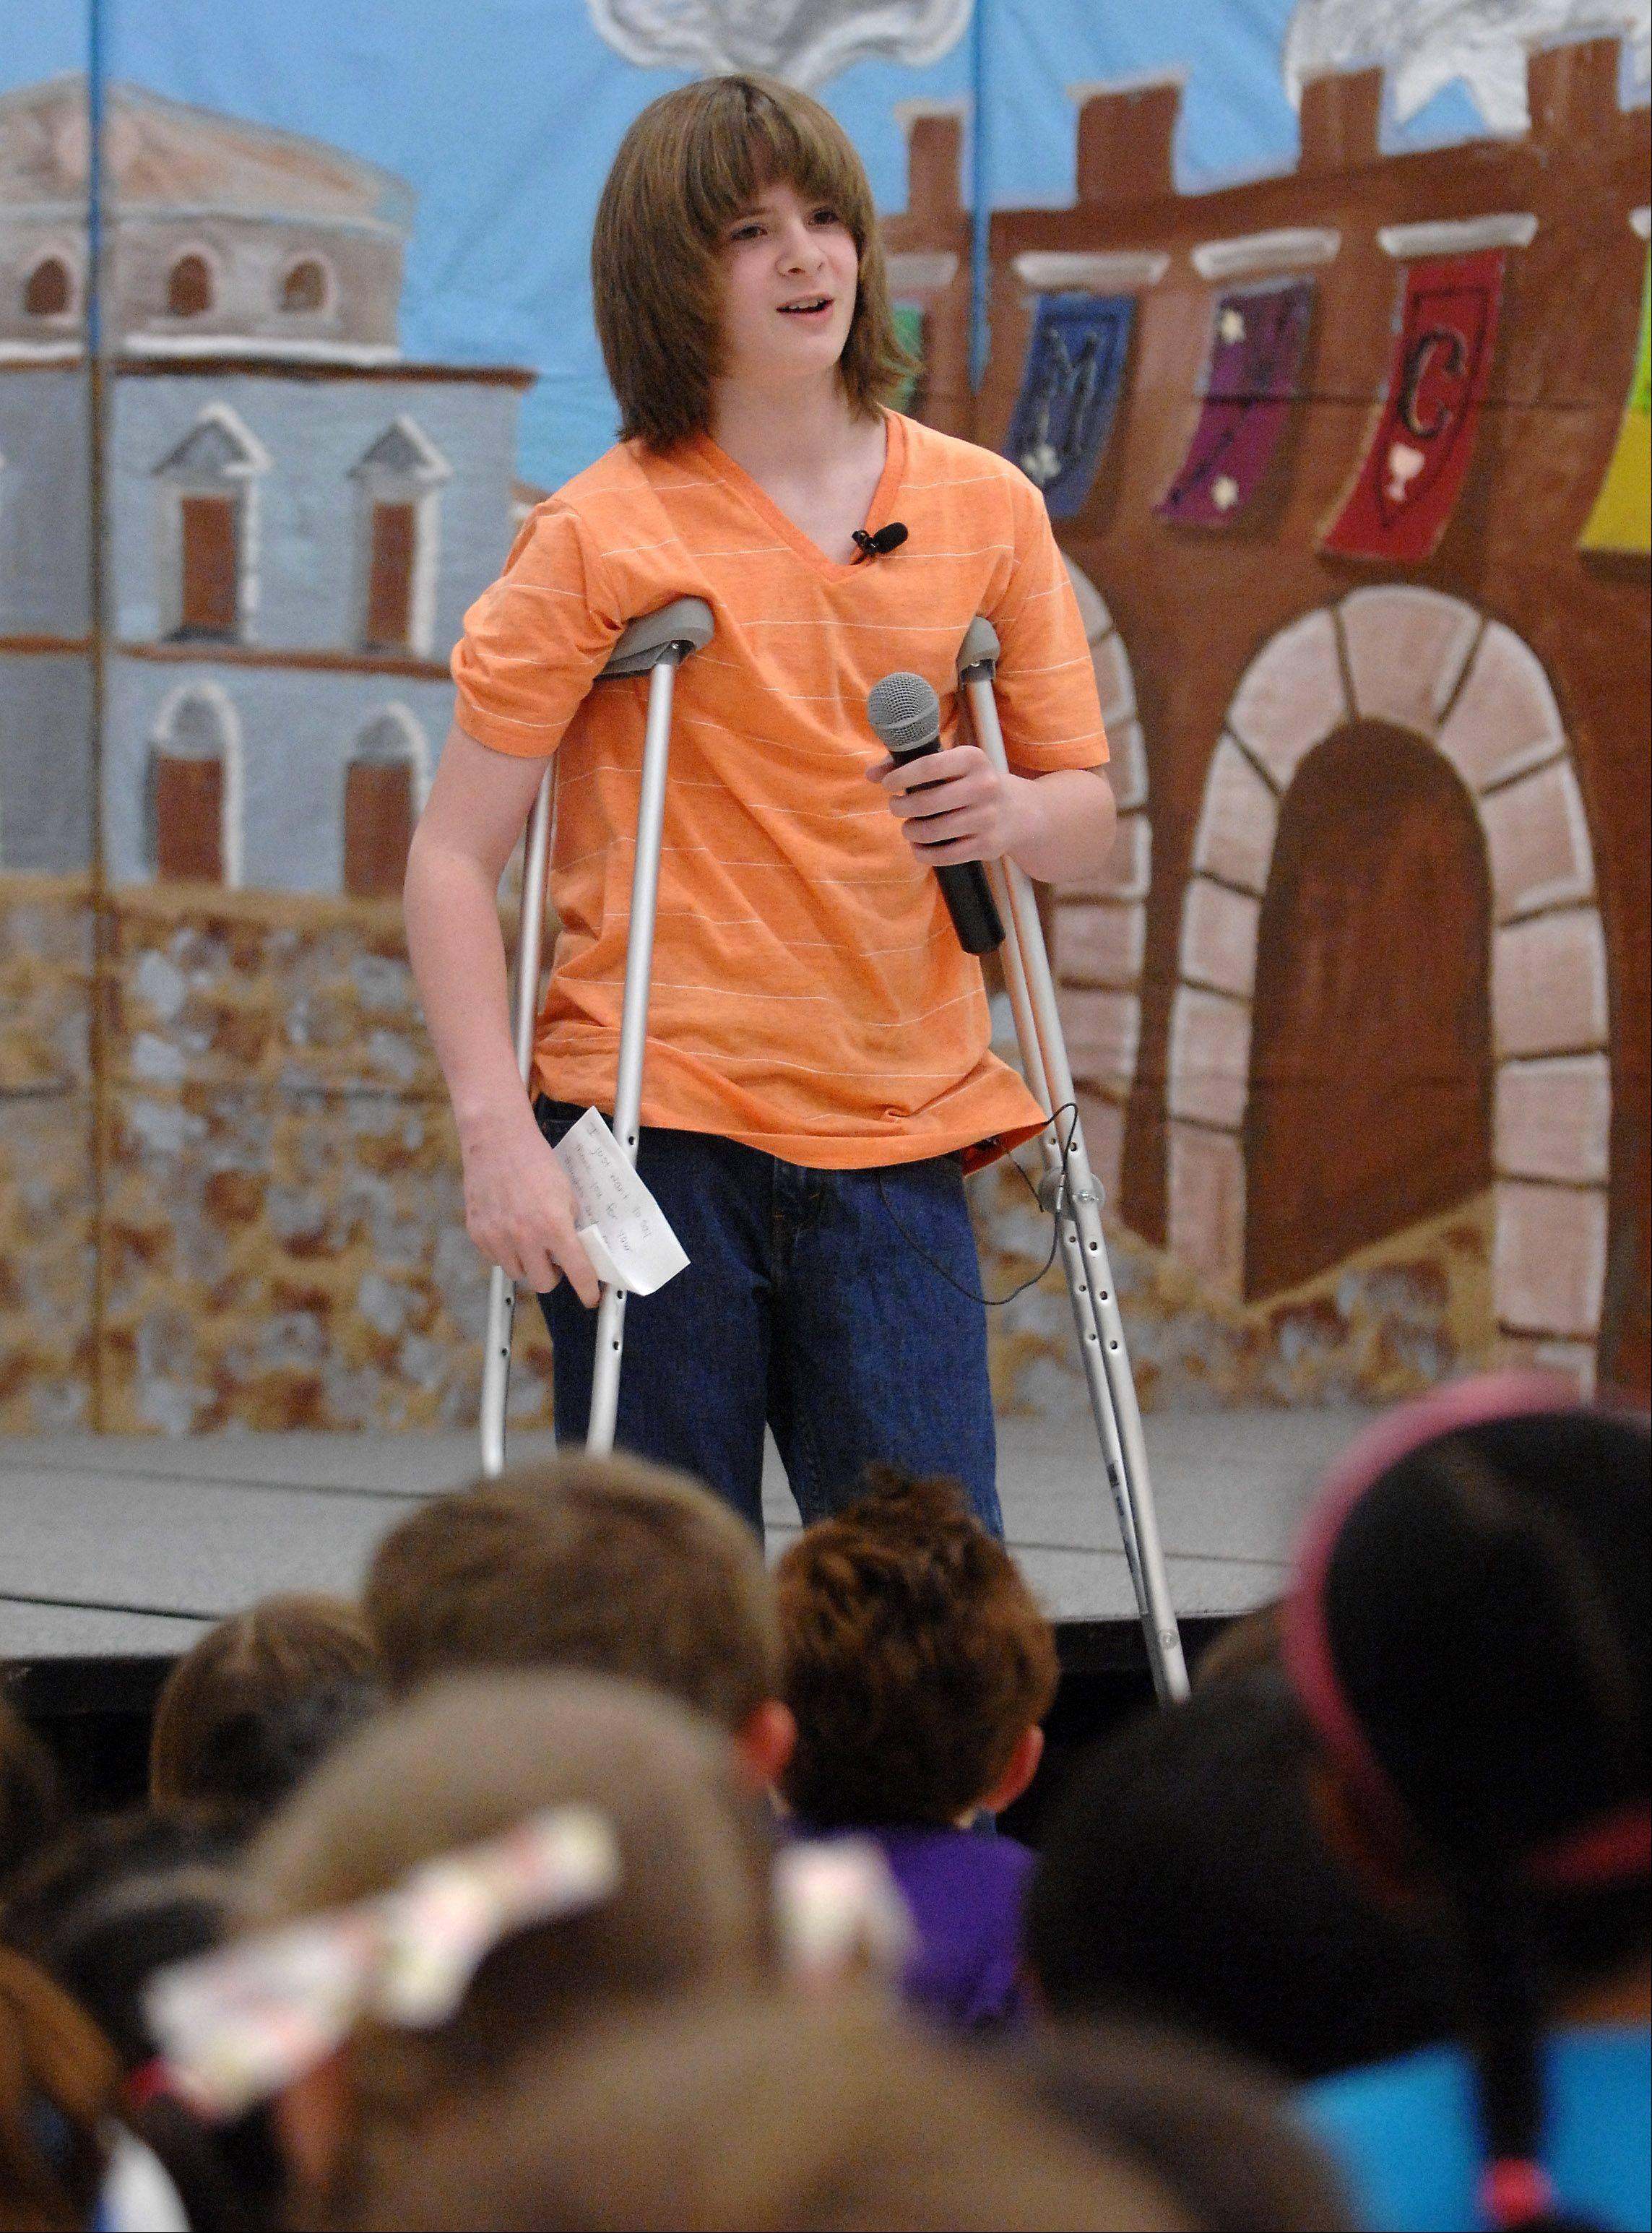 Dominic Szymanski, 11, addresses his classmates after returning to Hough Street School in Barrington for the first time since losing his foot after being struck by a train in March. He is a fifth-grader at the school.